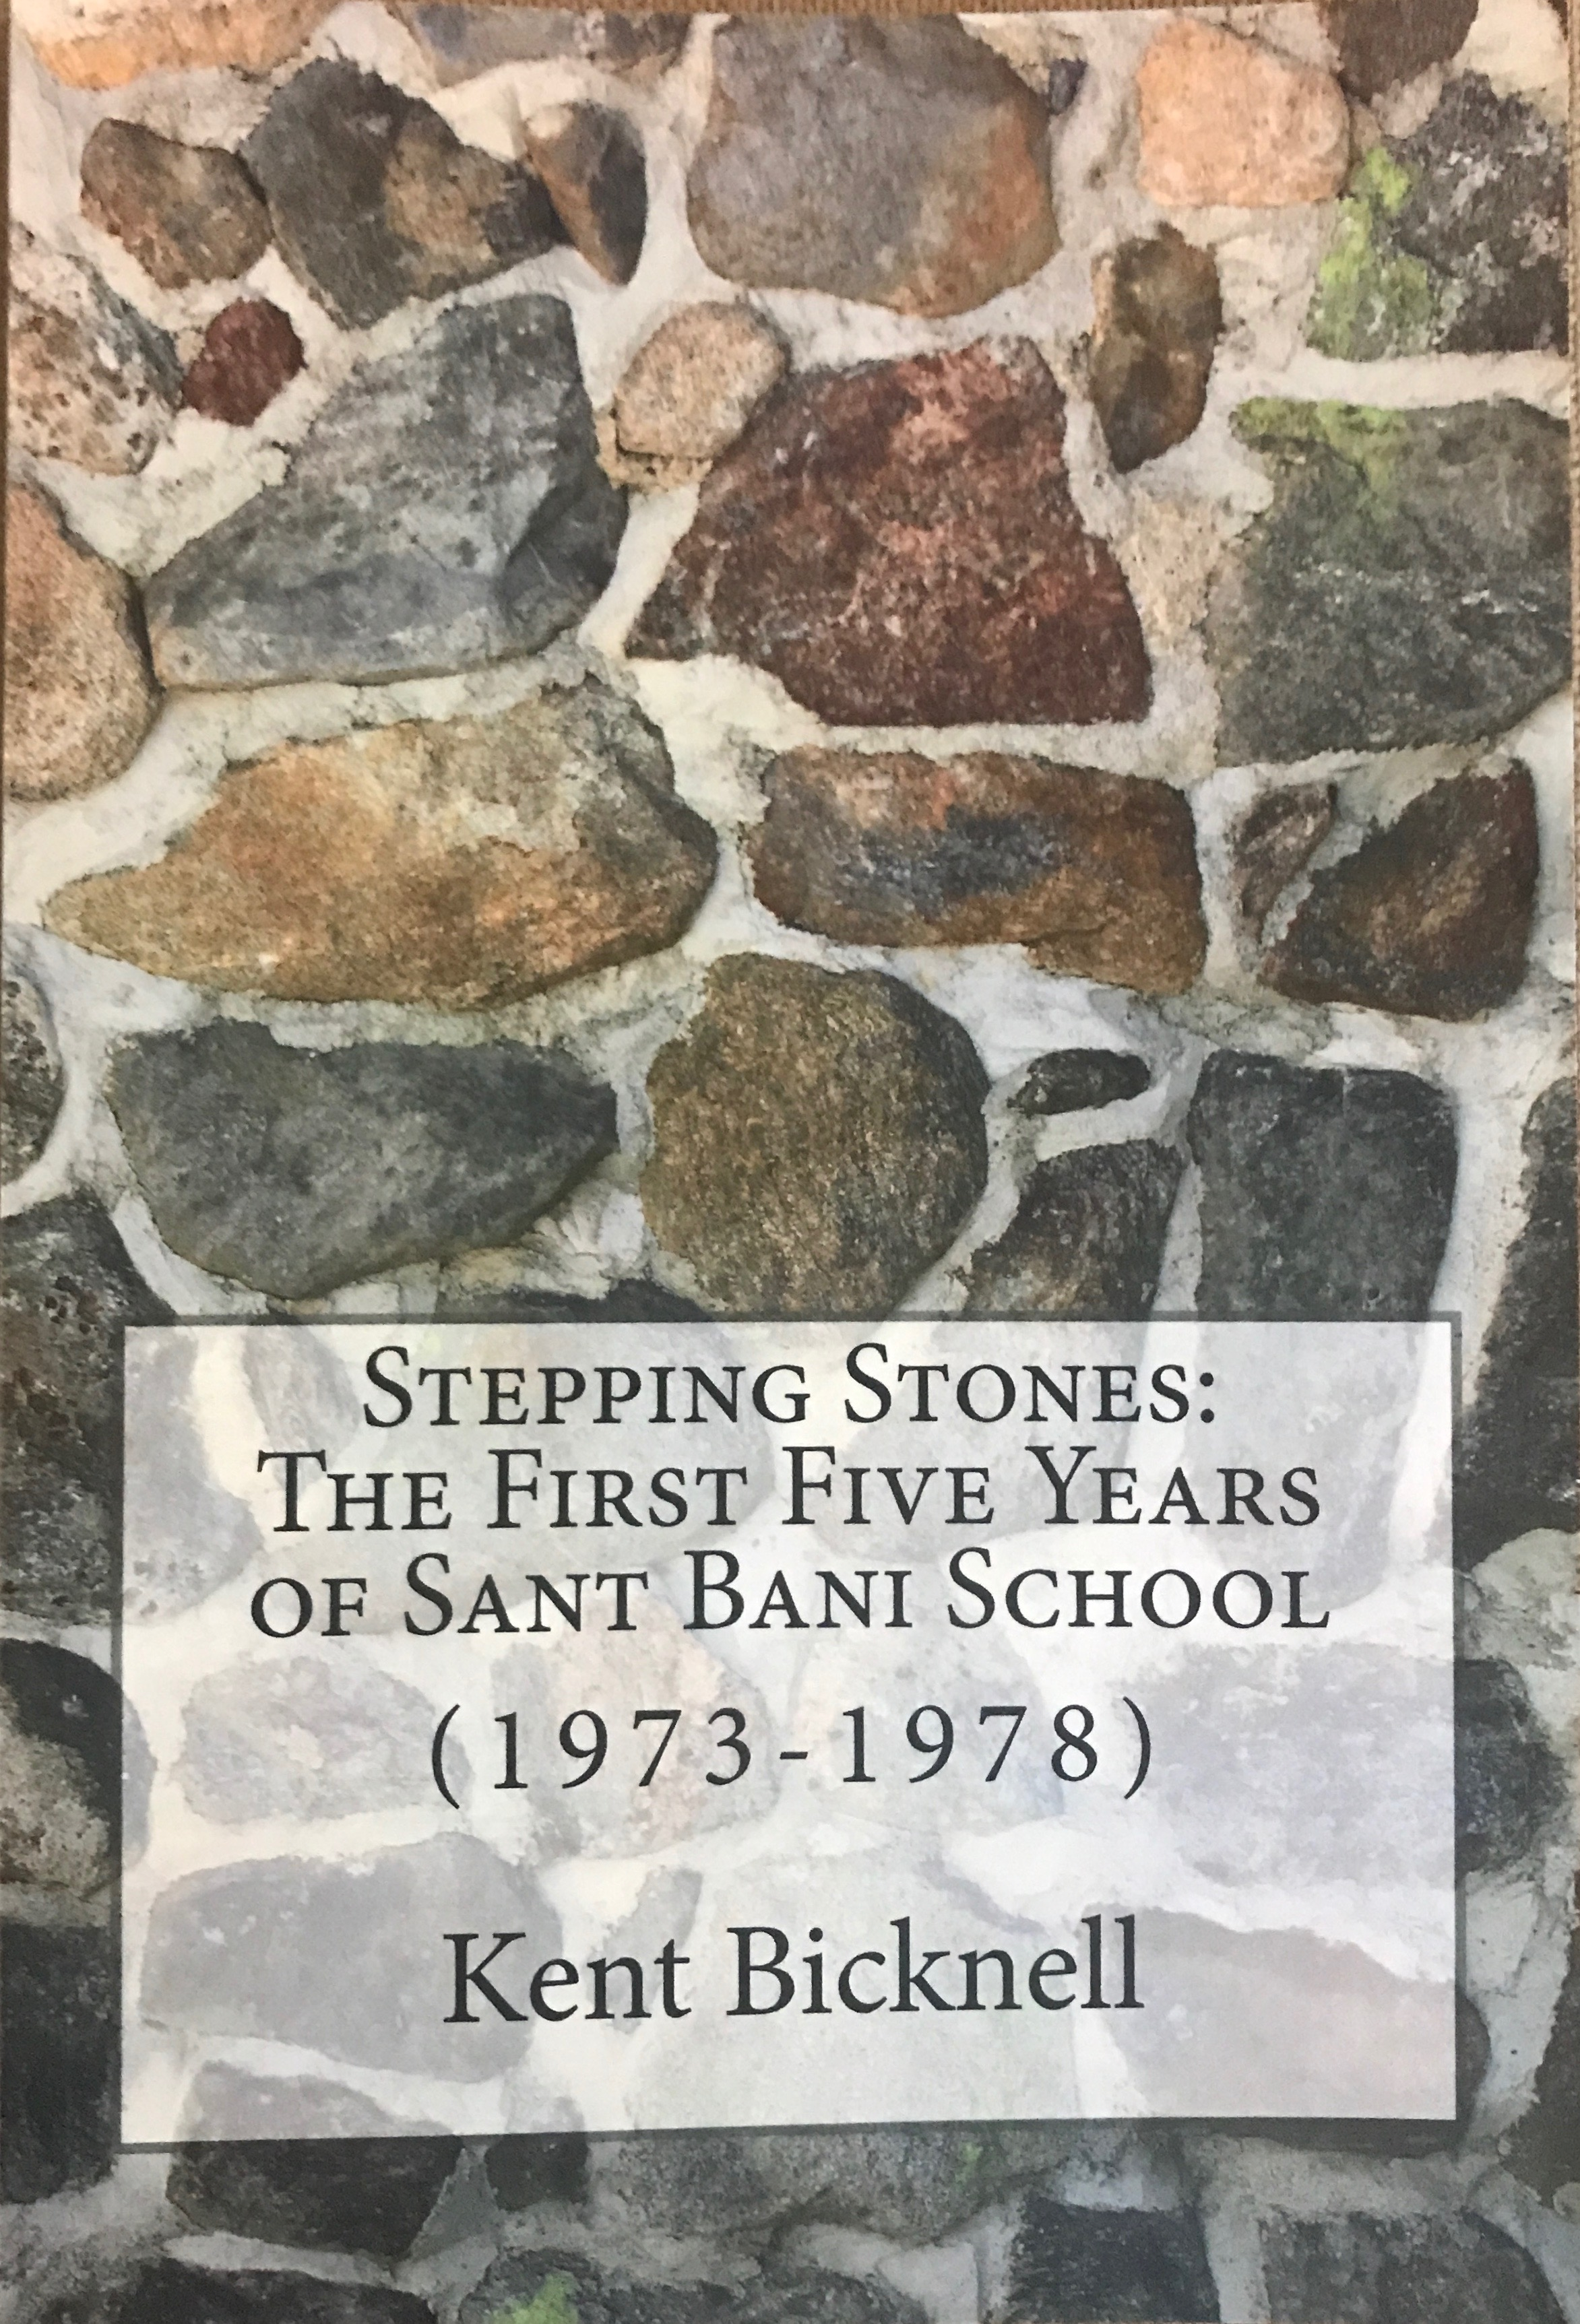 Stepping Stones: The First Five Years of Sant Bani School